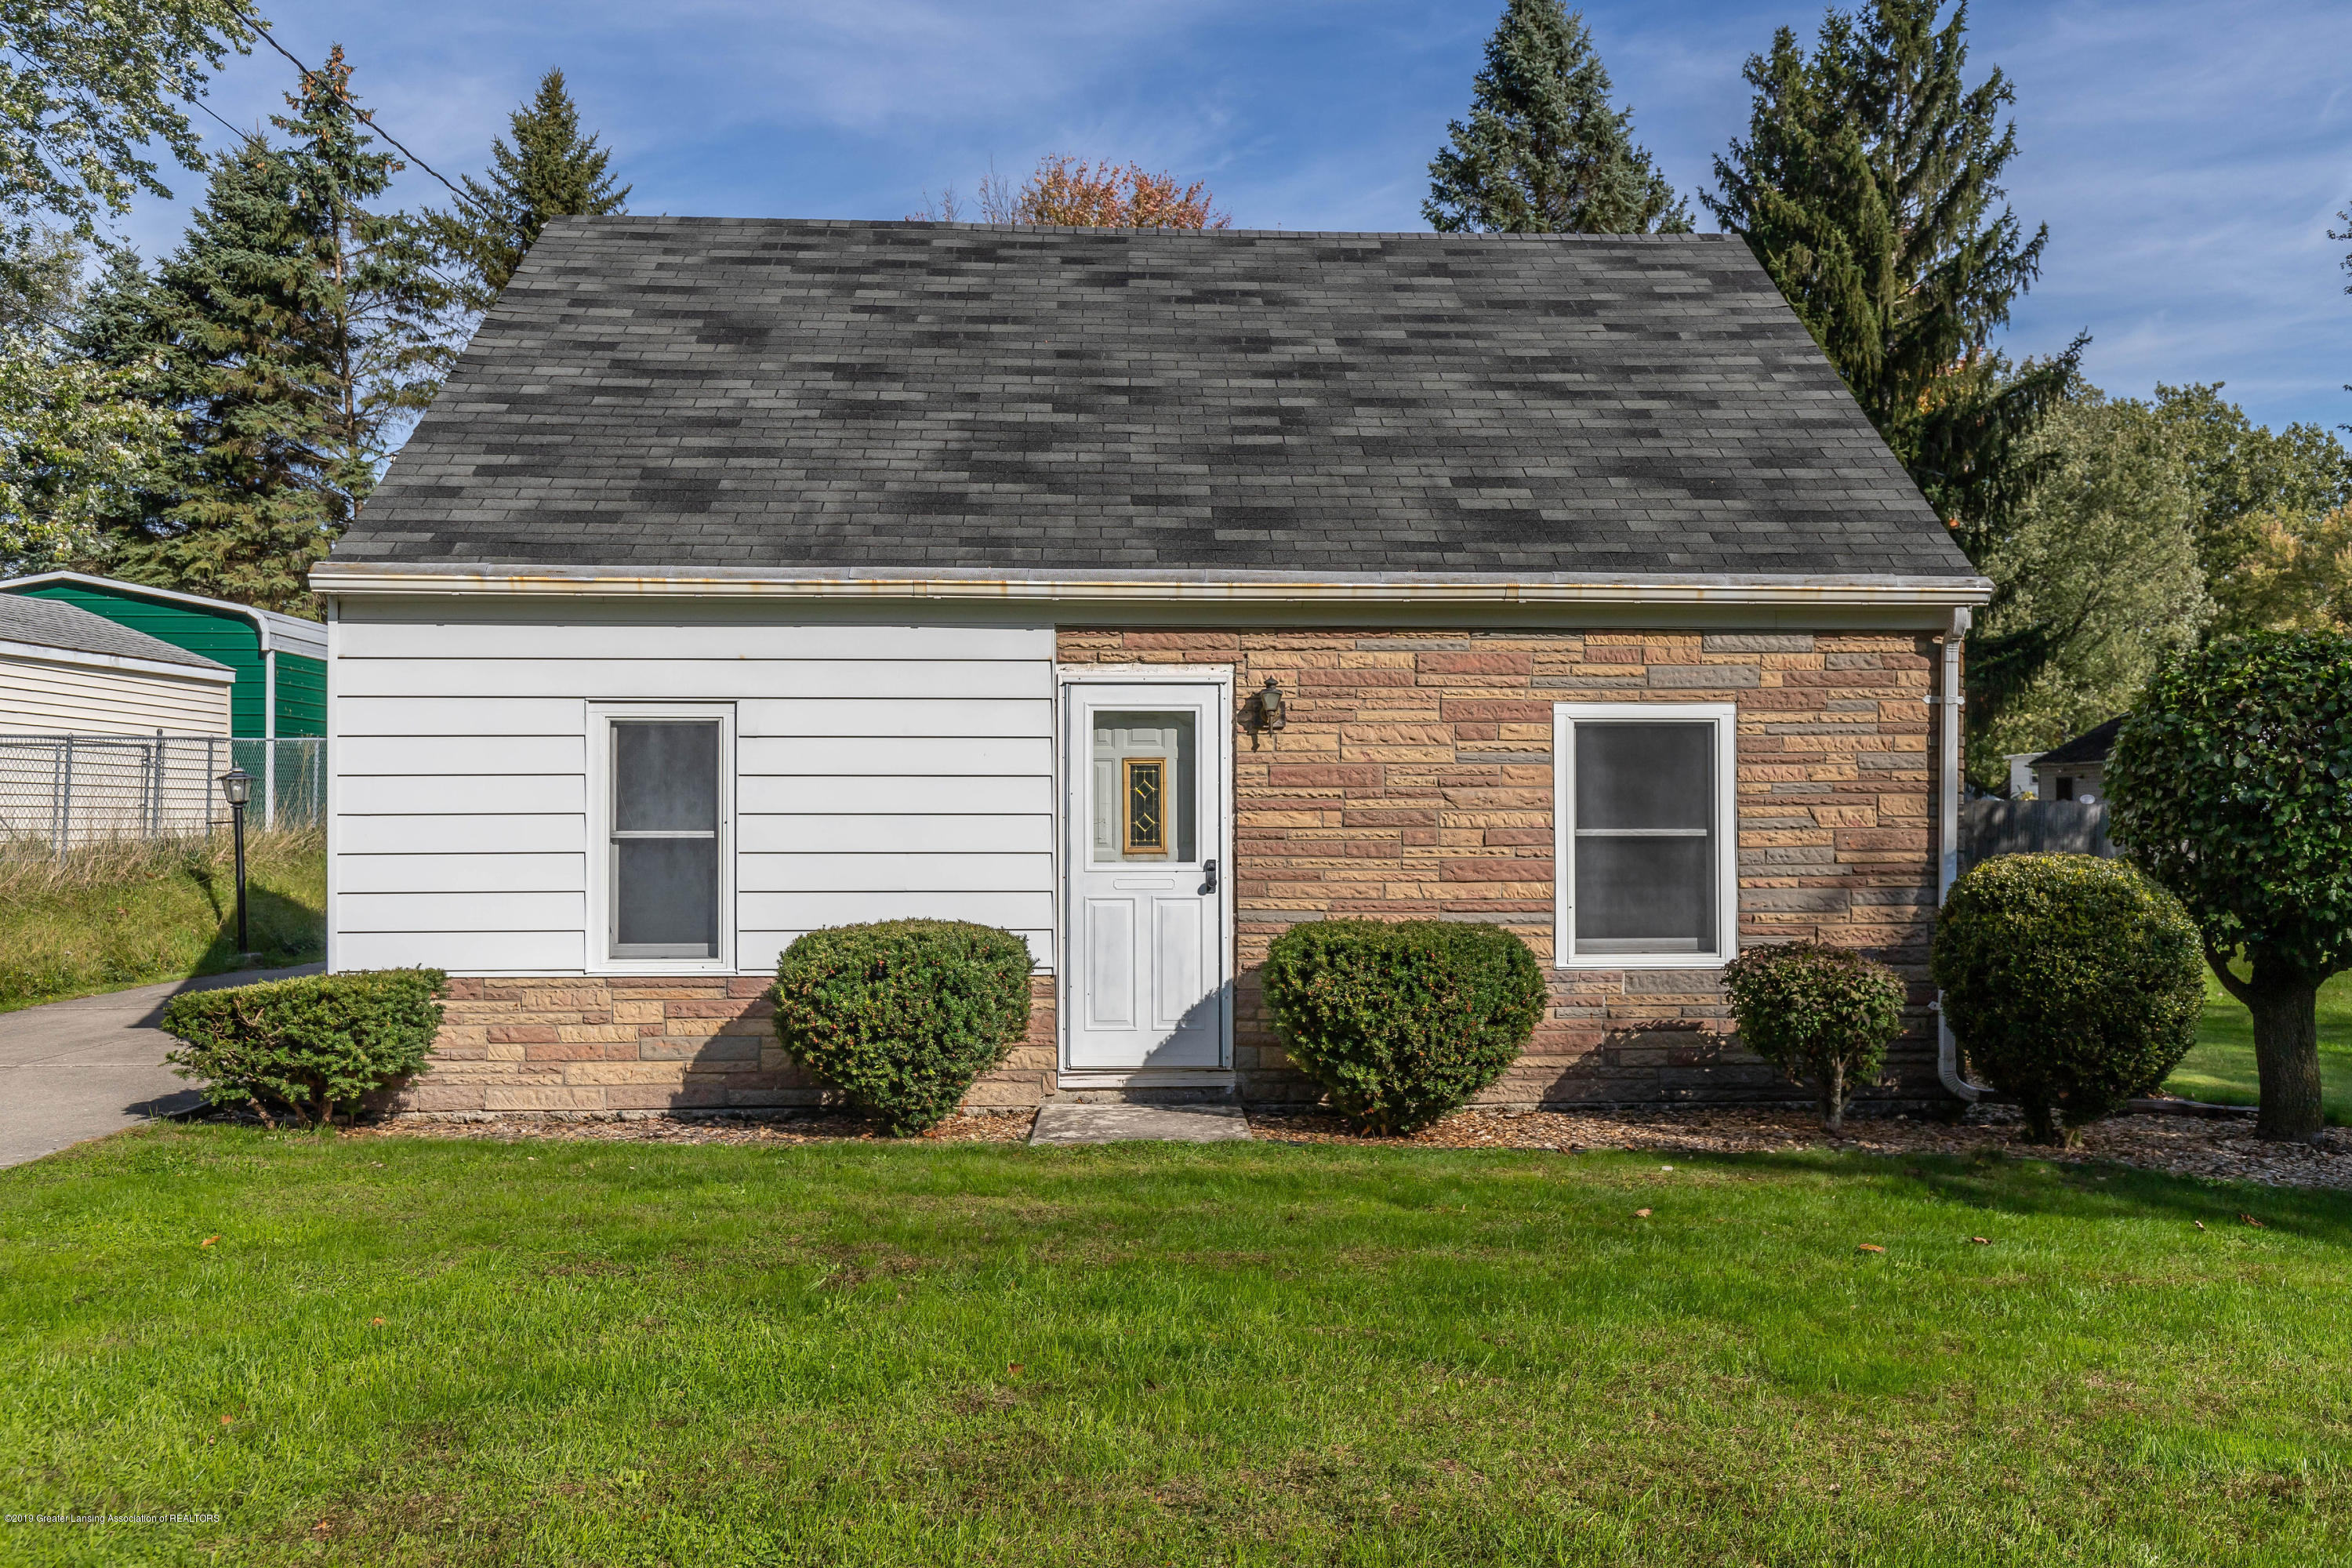 828 Hein Ave - heinfront2(1of1) - 27